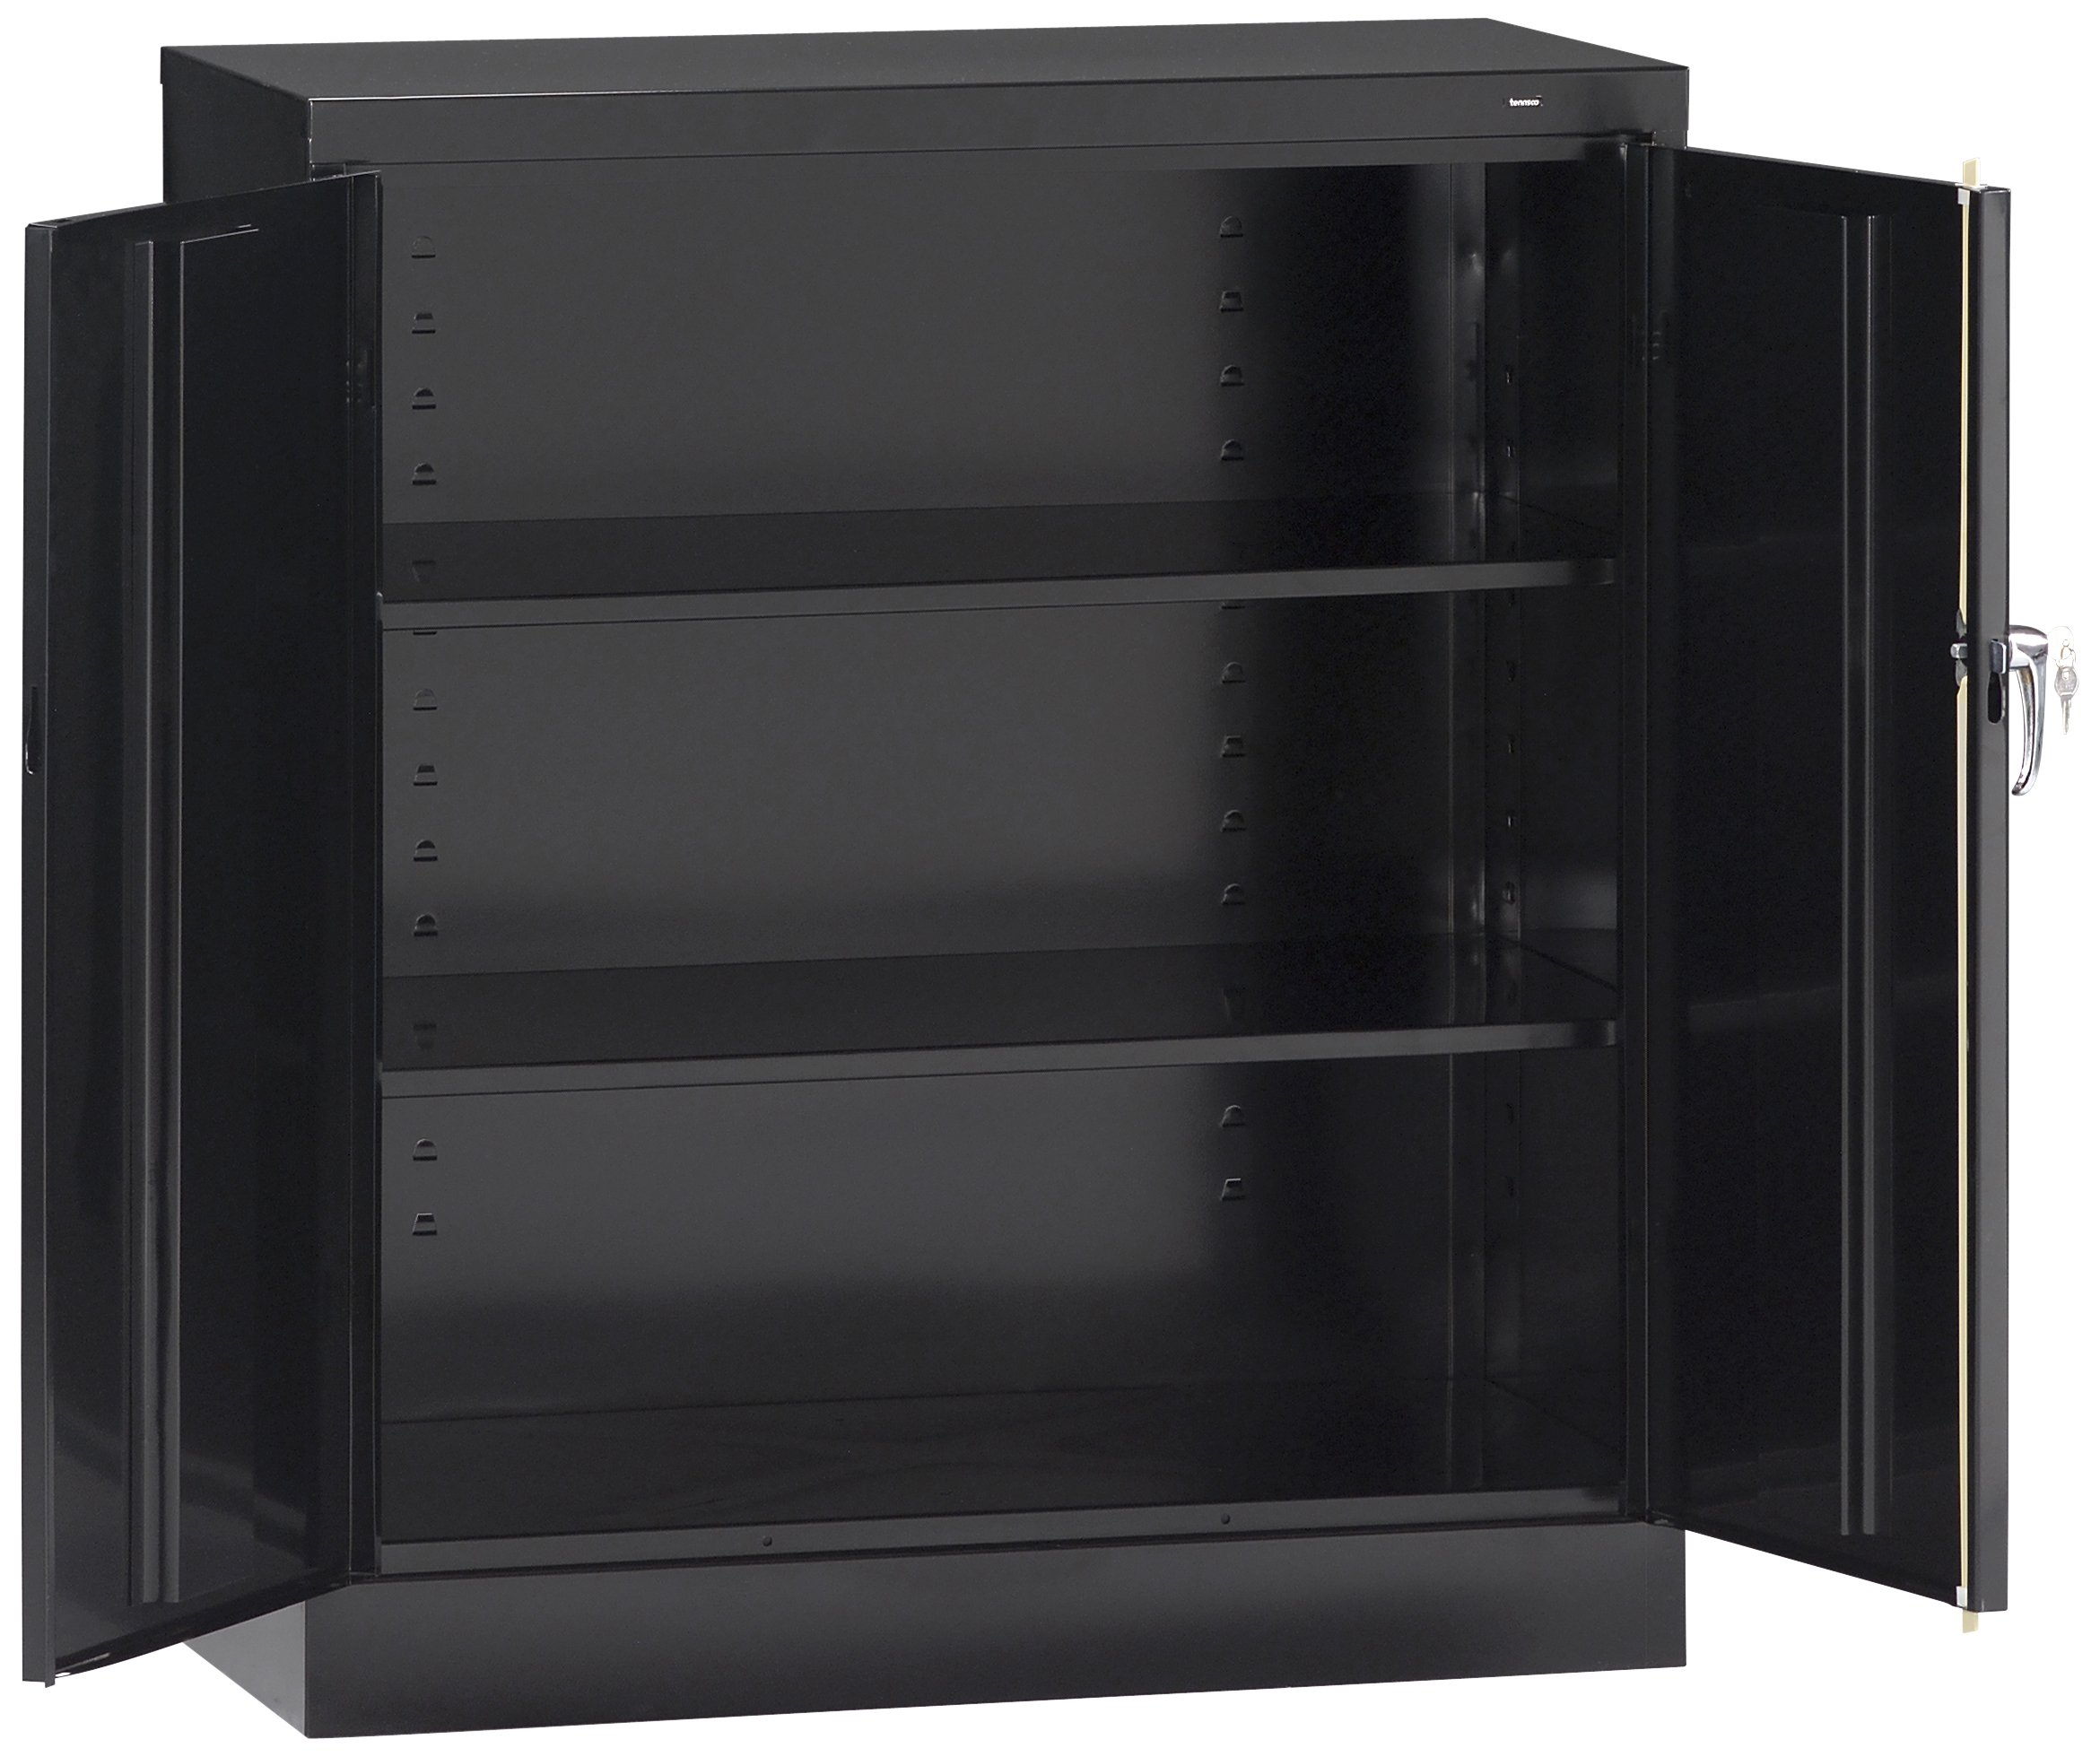 Tennsco 4218 24 Gauge Steel Standard Welded Counter High Cabinet, 2 Shelves, 150 lbs Capacity per Shelf, 36'' Width x 42'' Height x 18'' Depth, Black